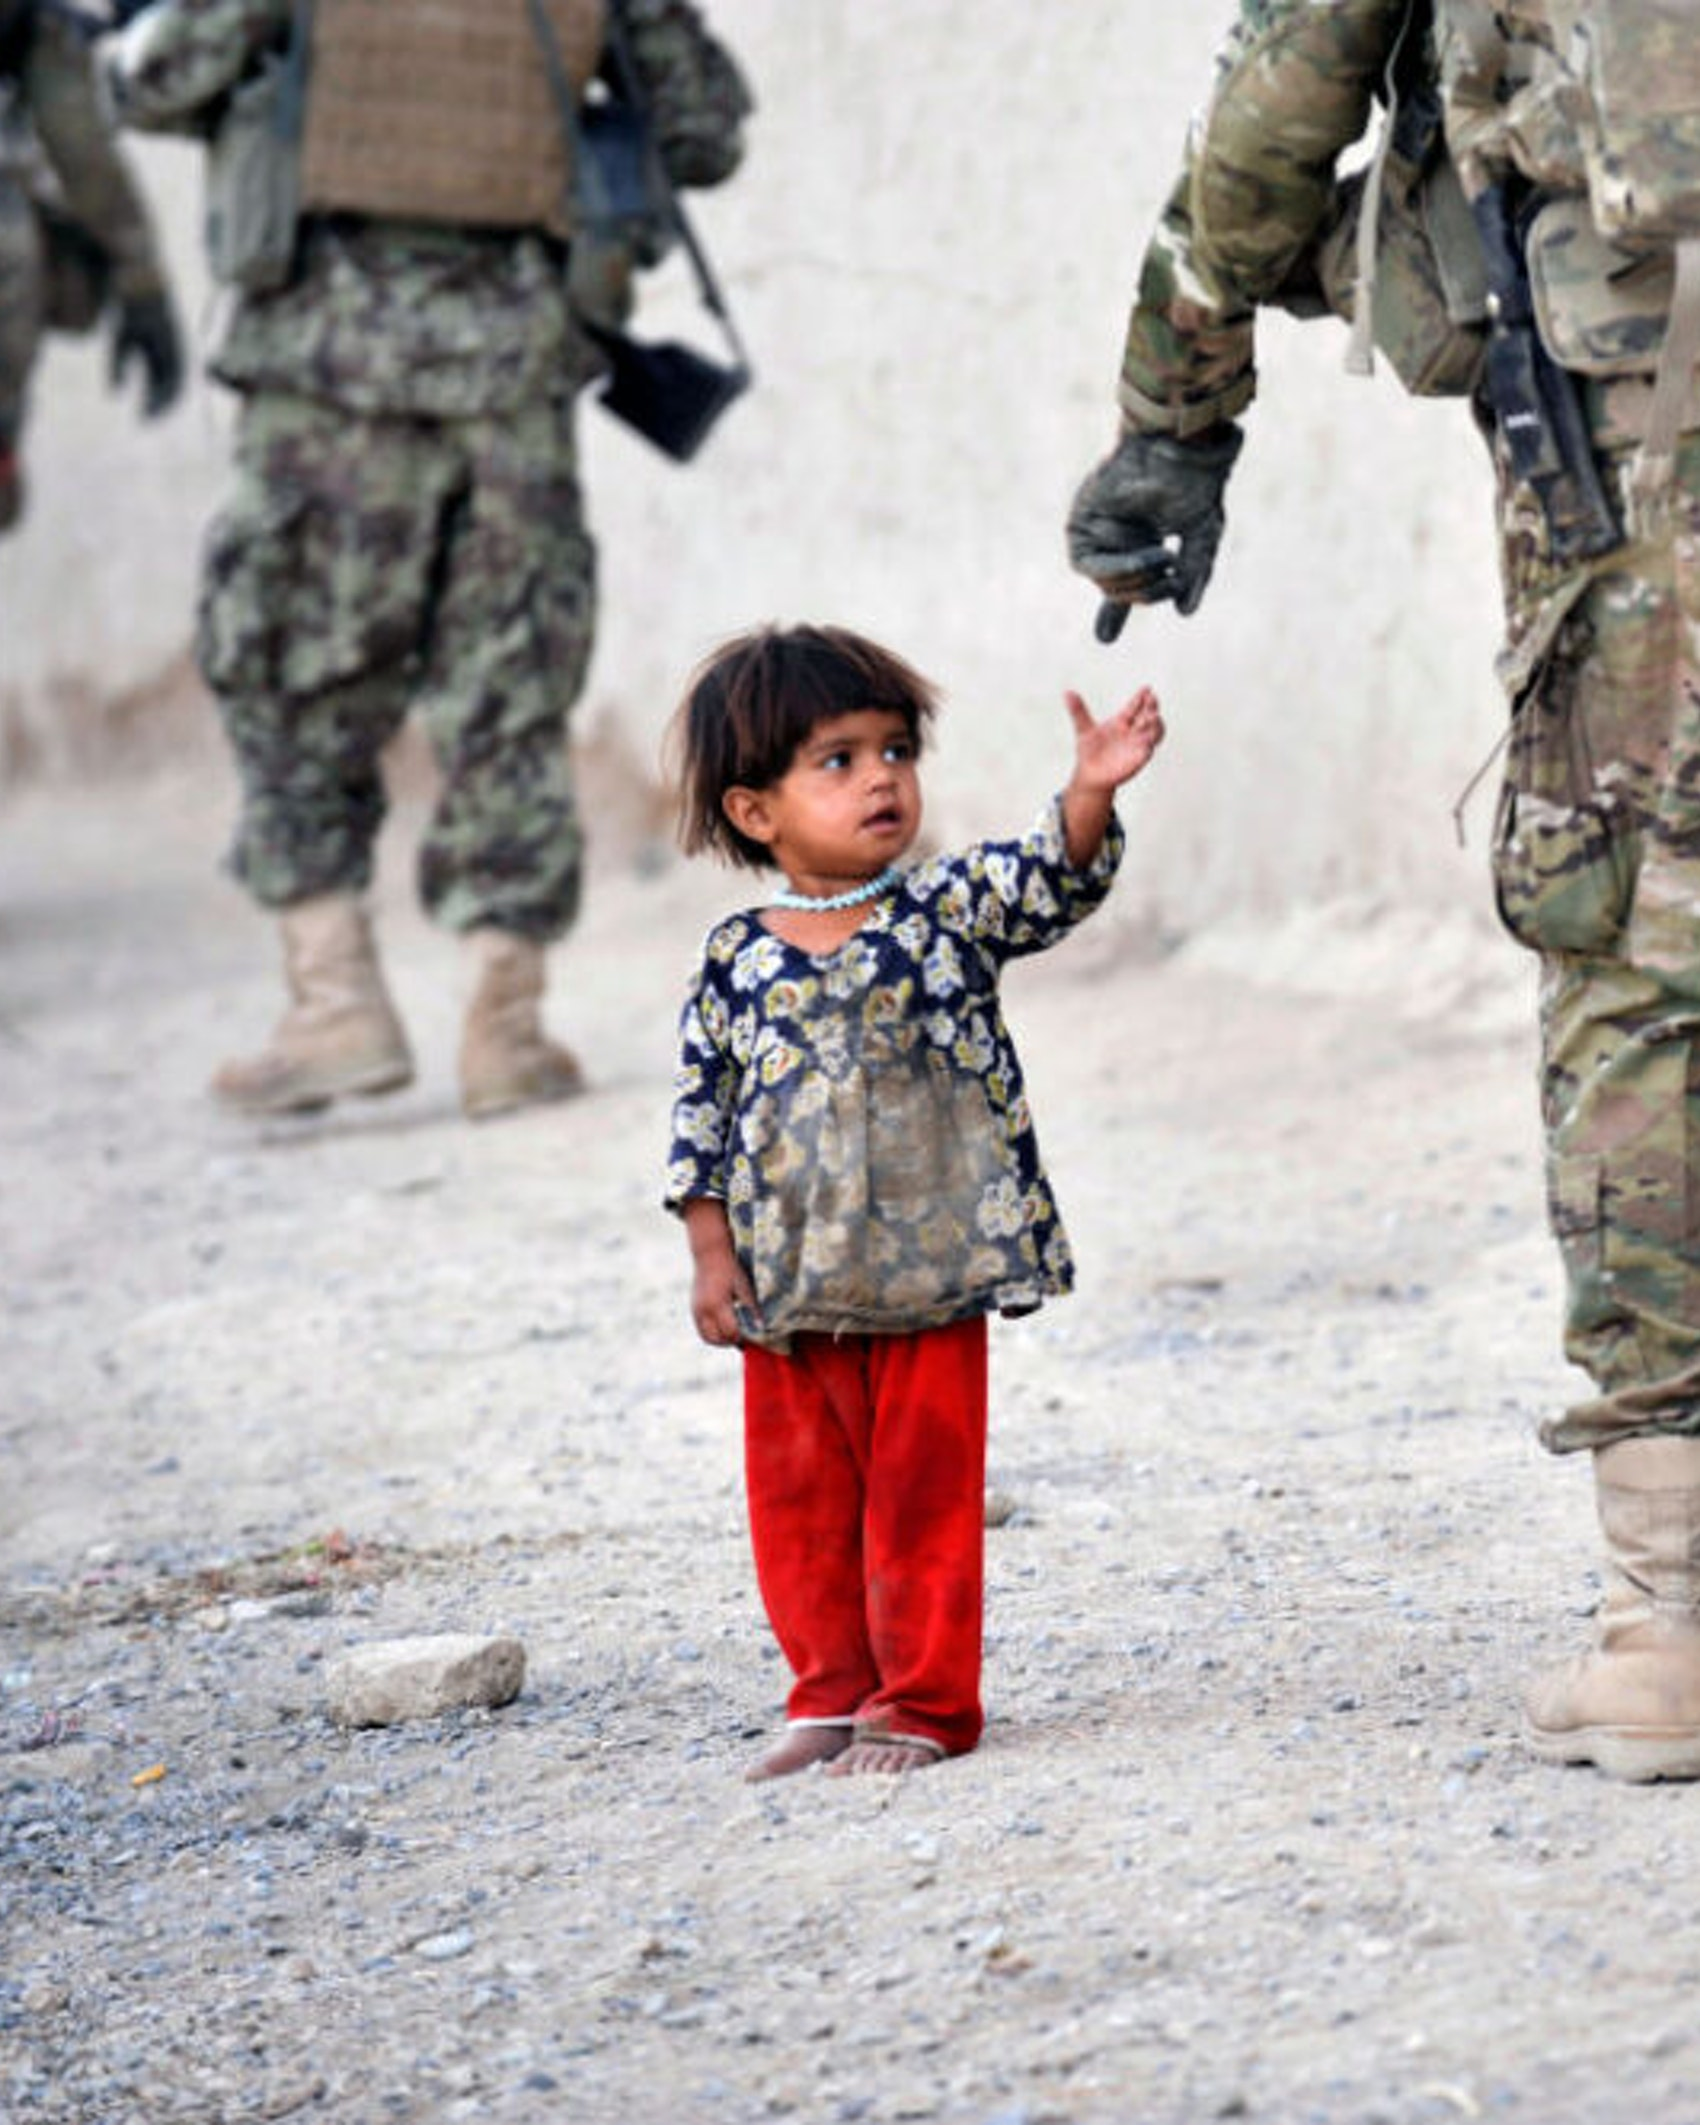 An Afghan girl greets a joint patrol of US troops from the Charlie Company, 2-87 Infantry, 3rd Brigade Combat Team and Afghan National Army soldiers at Kandalay village in the southern Afghan province of Kandahar on August 8, 2011 while US troops launched missile attacks on Taliban targets in nearby Kelawai village killing at least three and capturing two insurgents. US forces push their counterinsurgency efforts to battle for the hearts and minds of the local population.